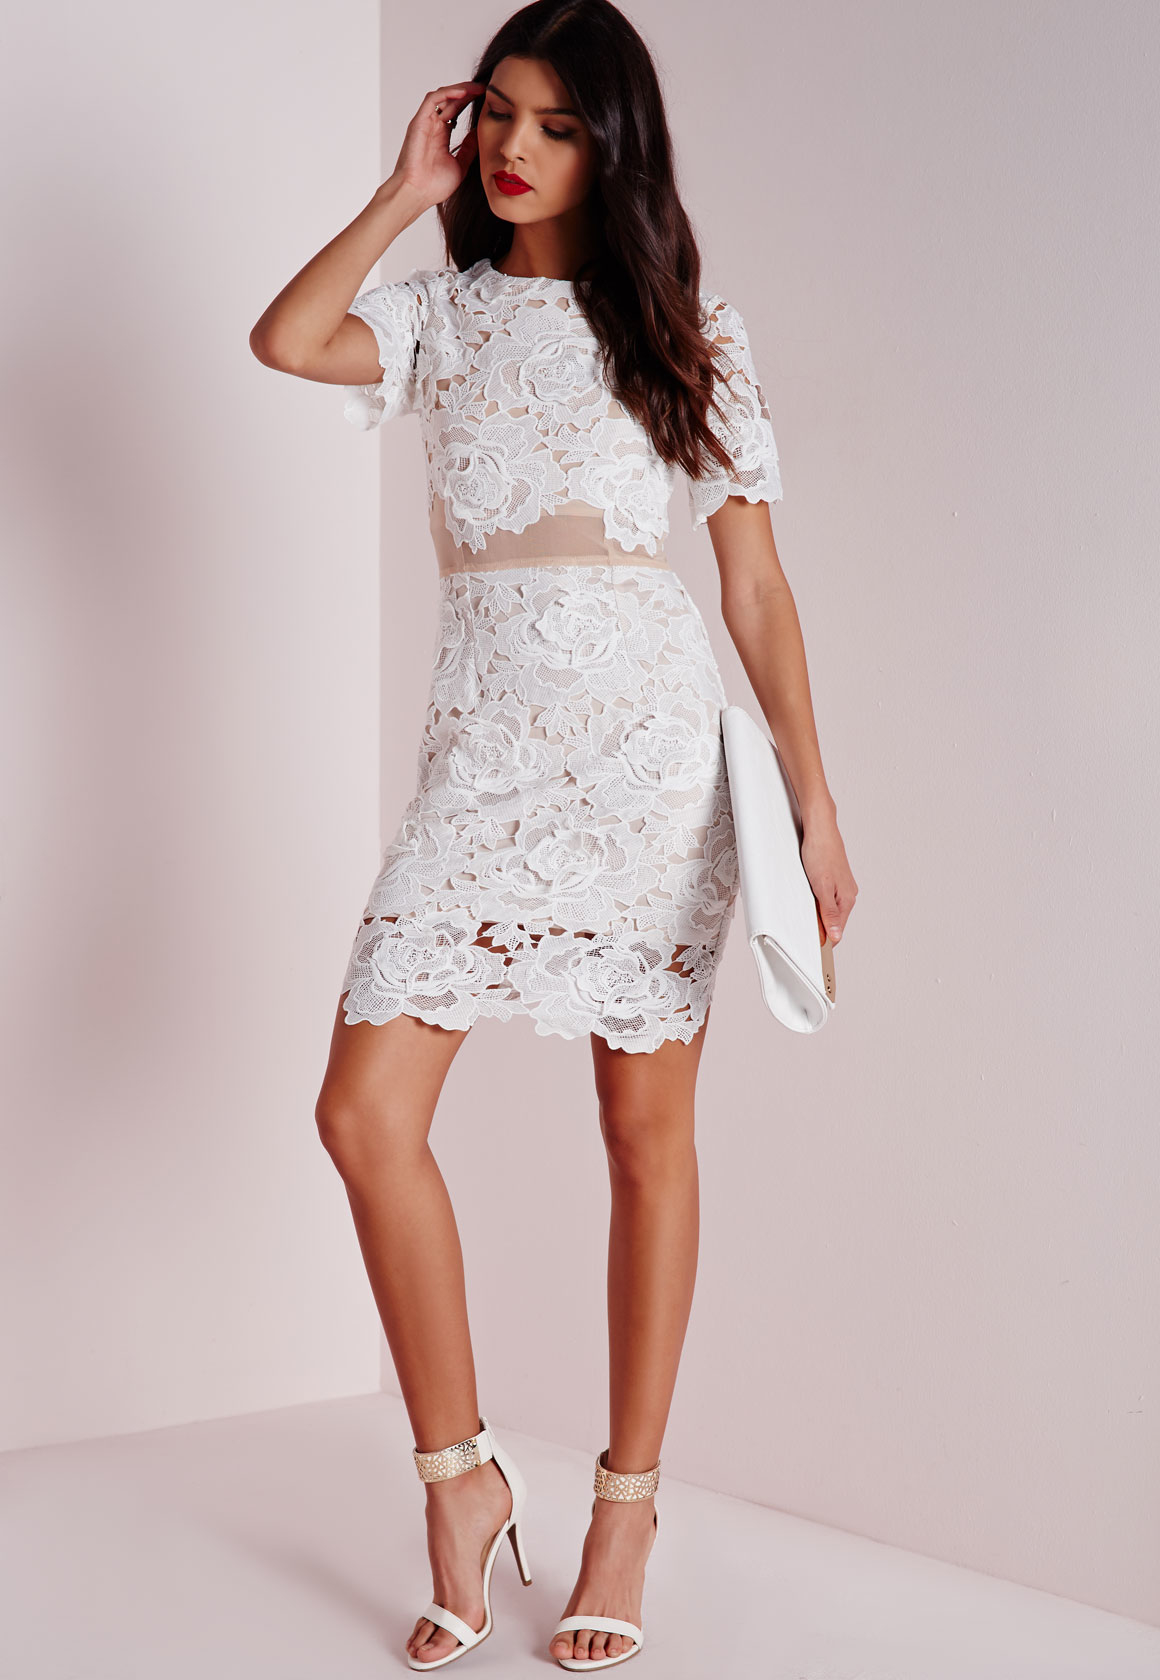 Shoes With Cream Lace Dress